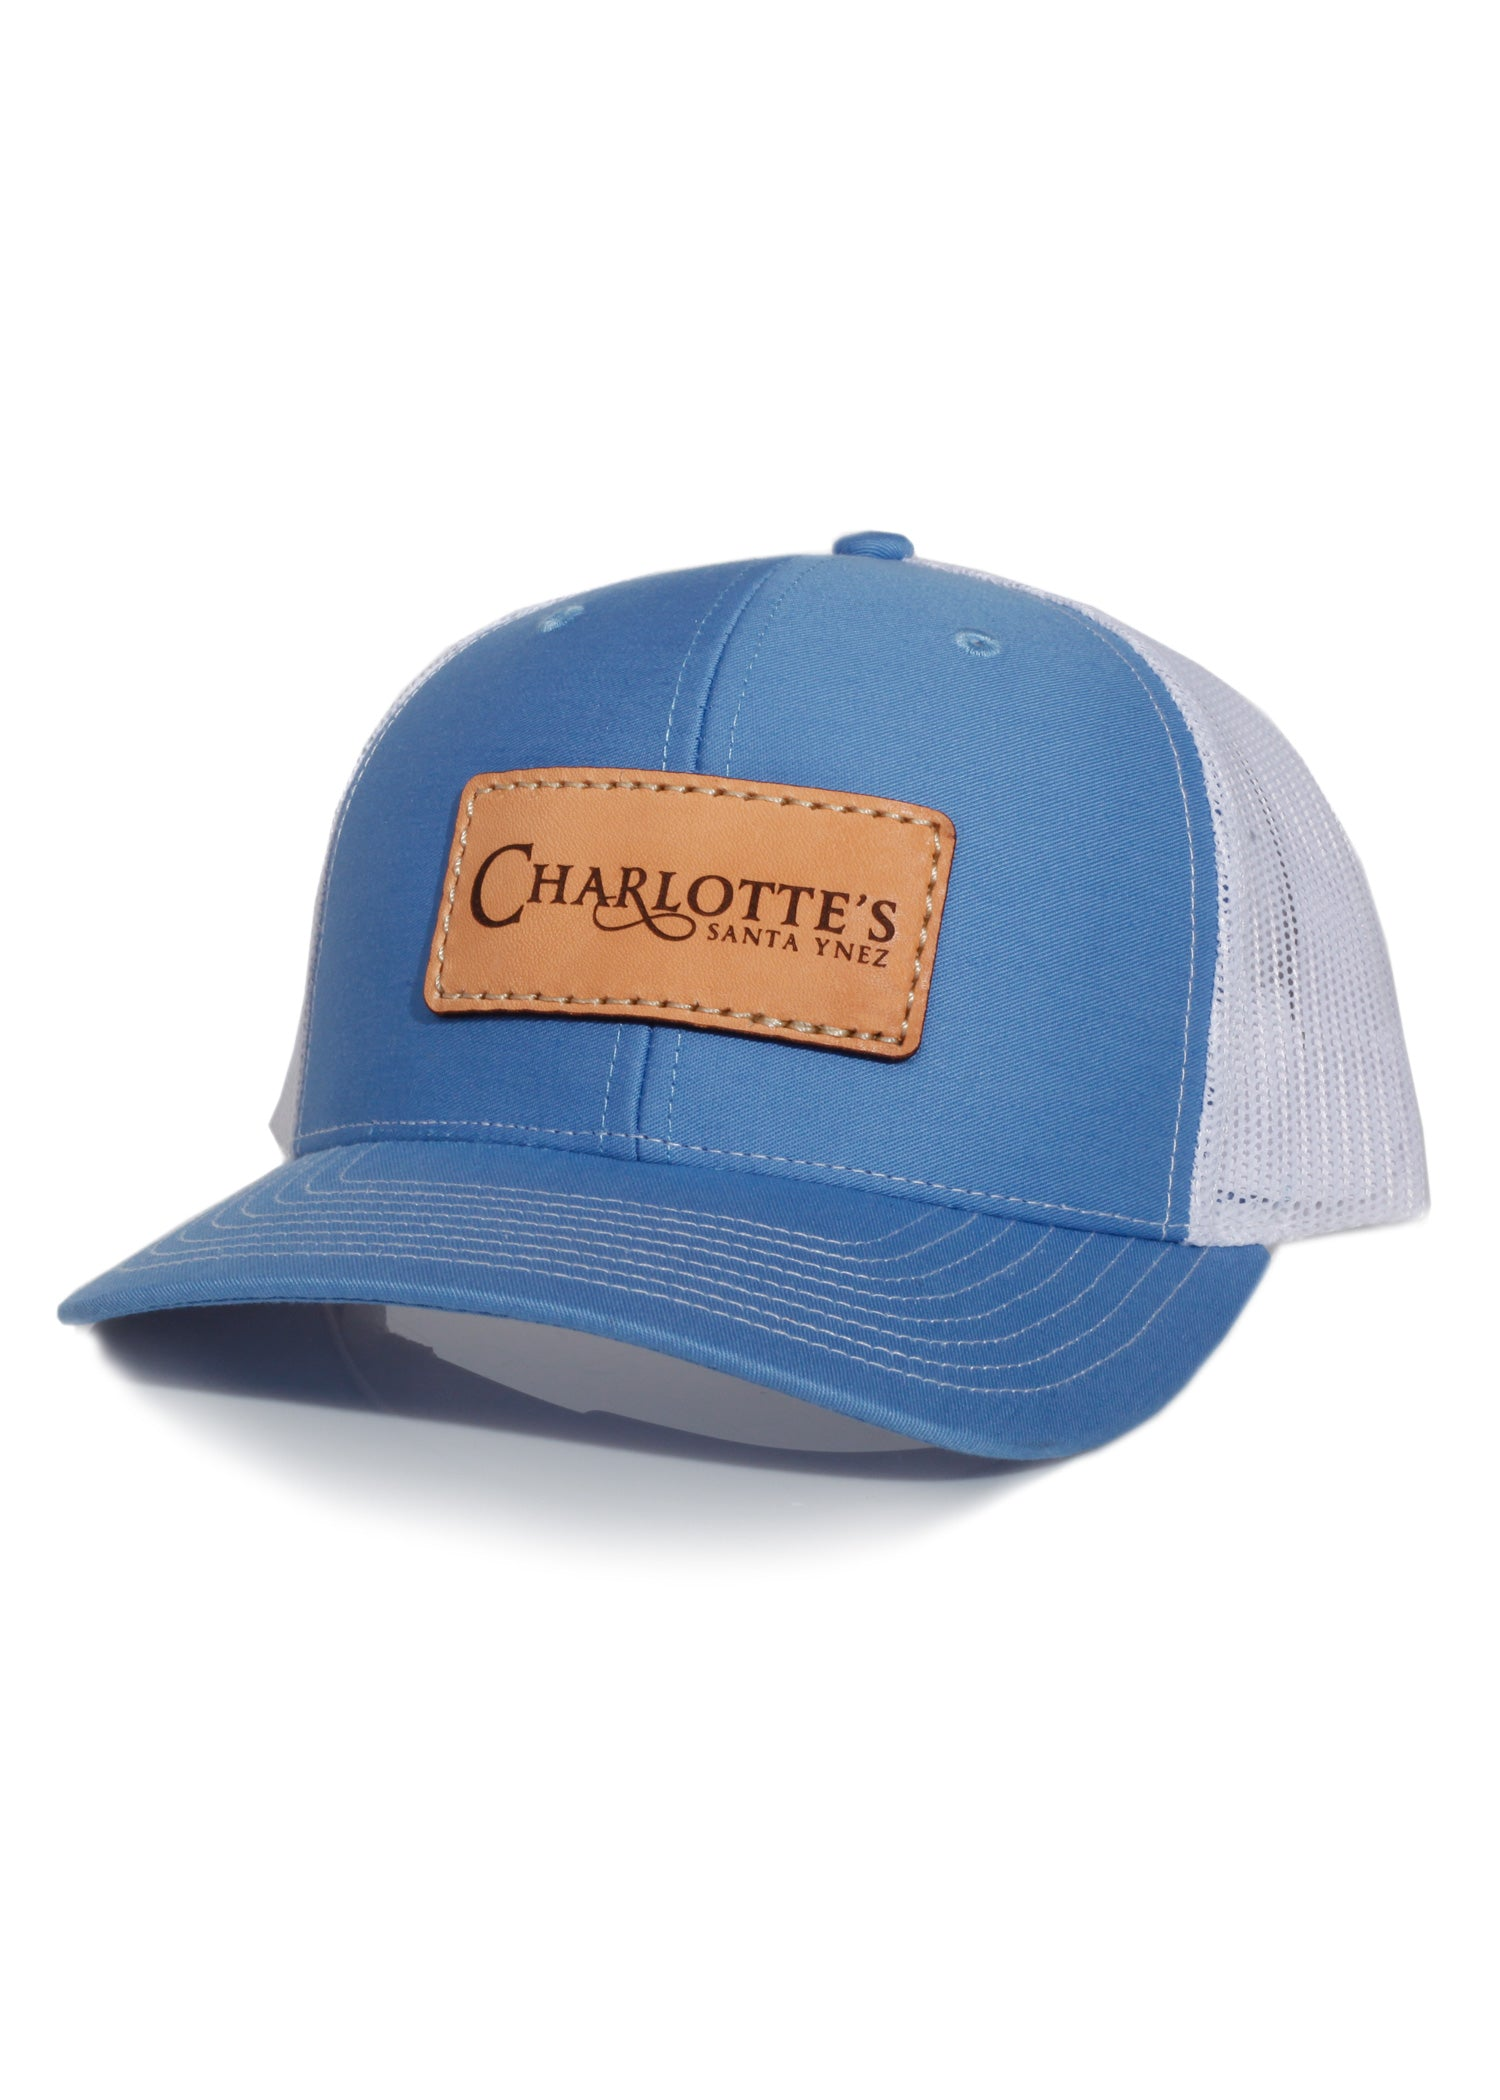 Charlotte's - Richardson 112 Columbia Blue/White